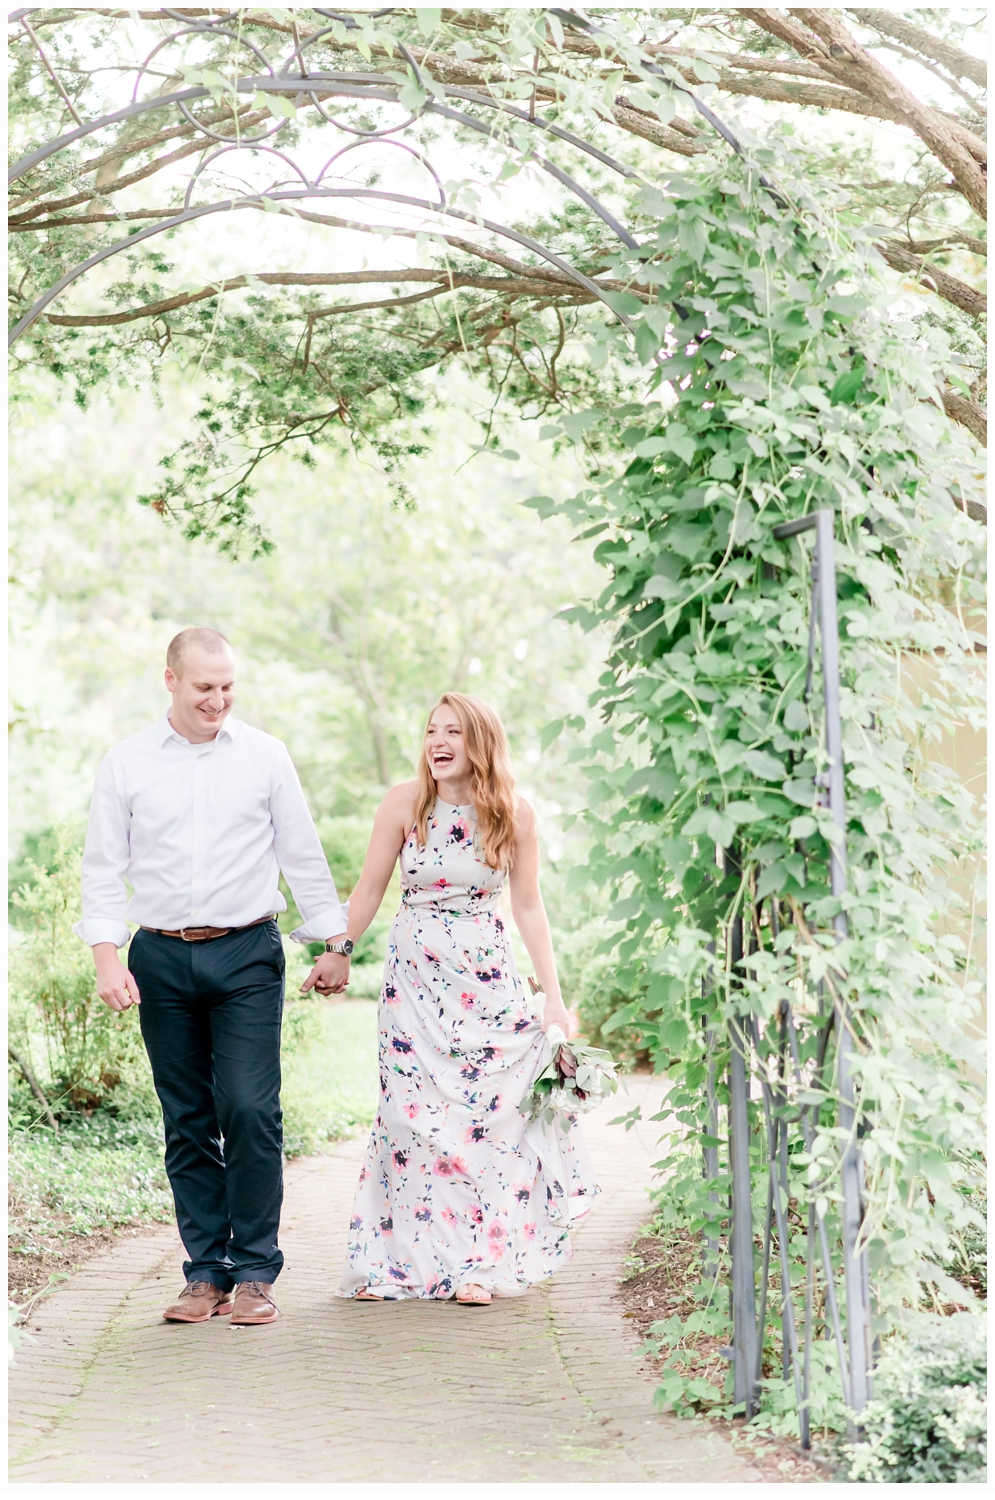 man and woman holding hands walking in garden